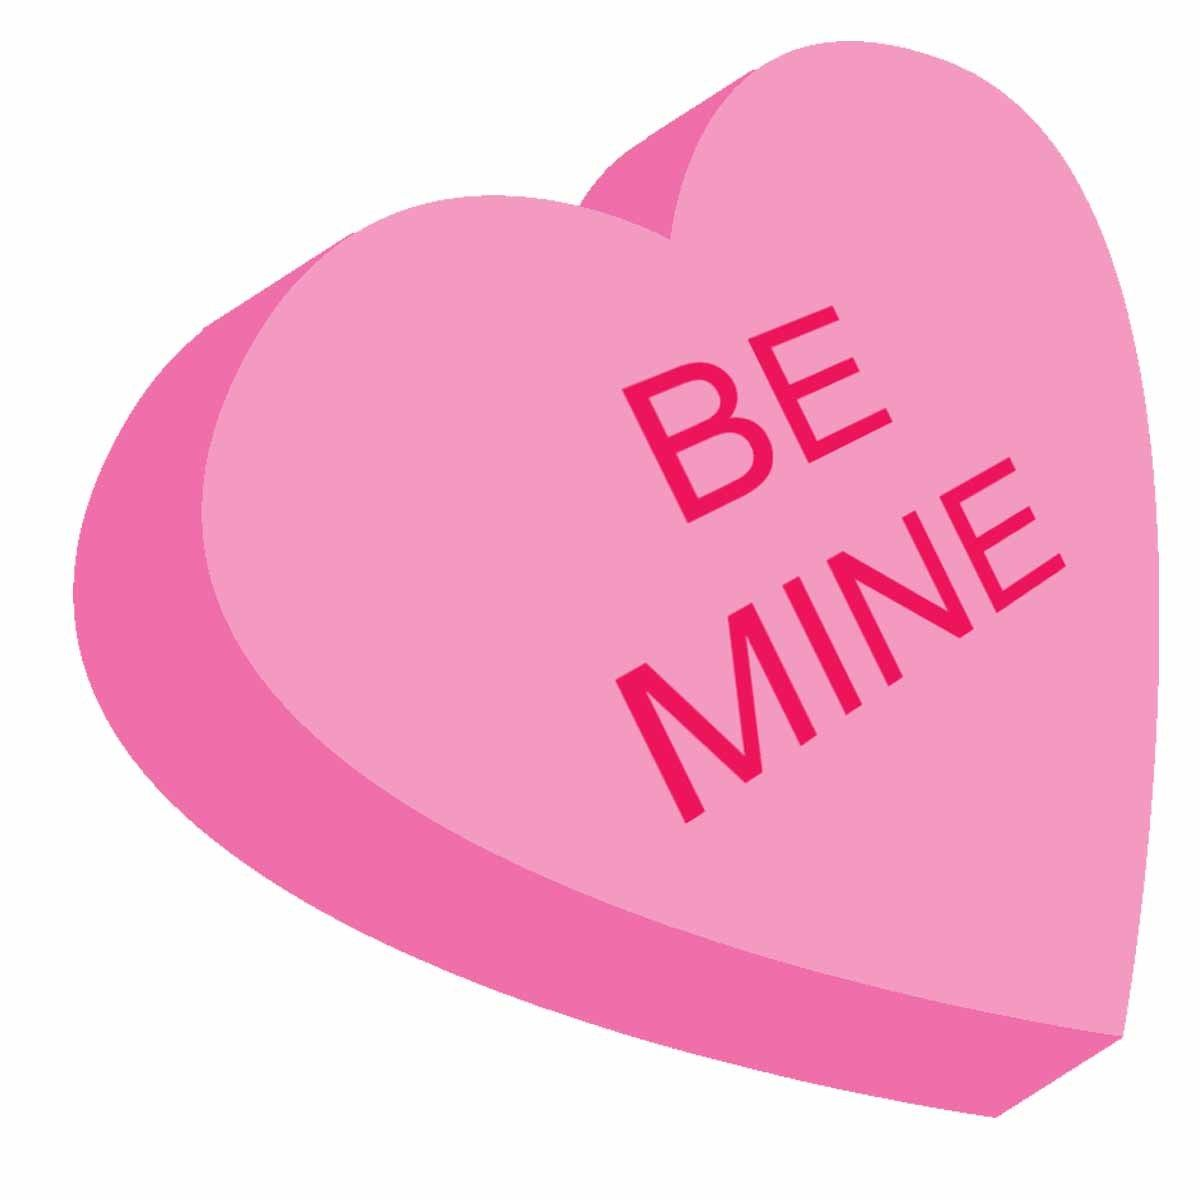 Image Valentine\'s Day Heart Candy. Candy Heart Image Is.